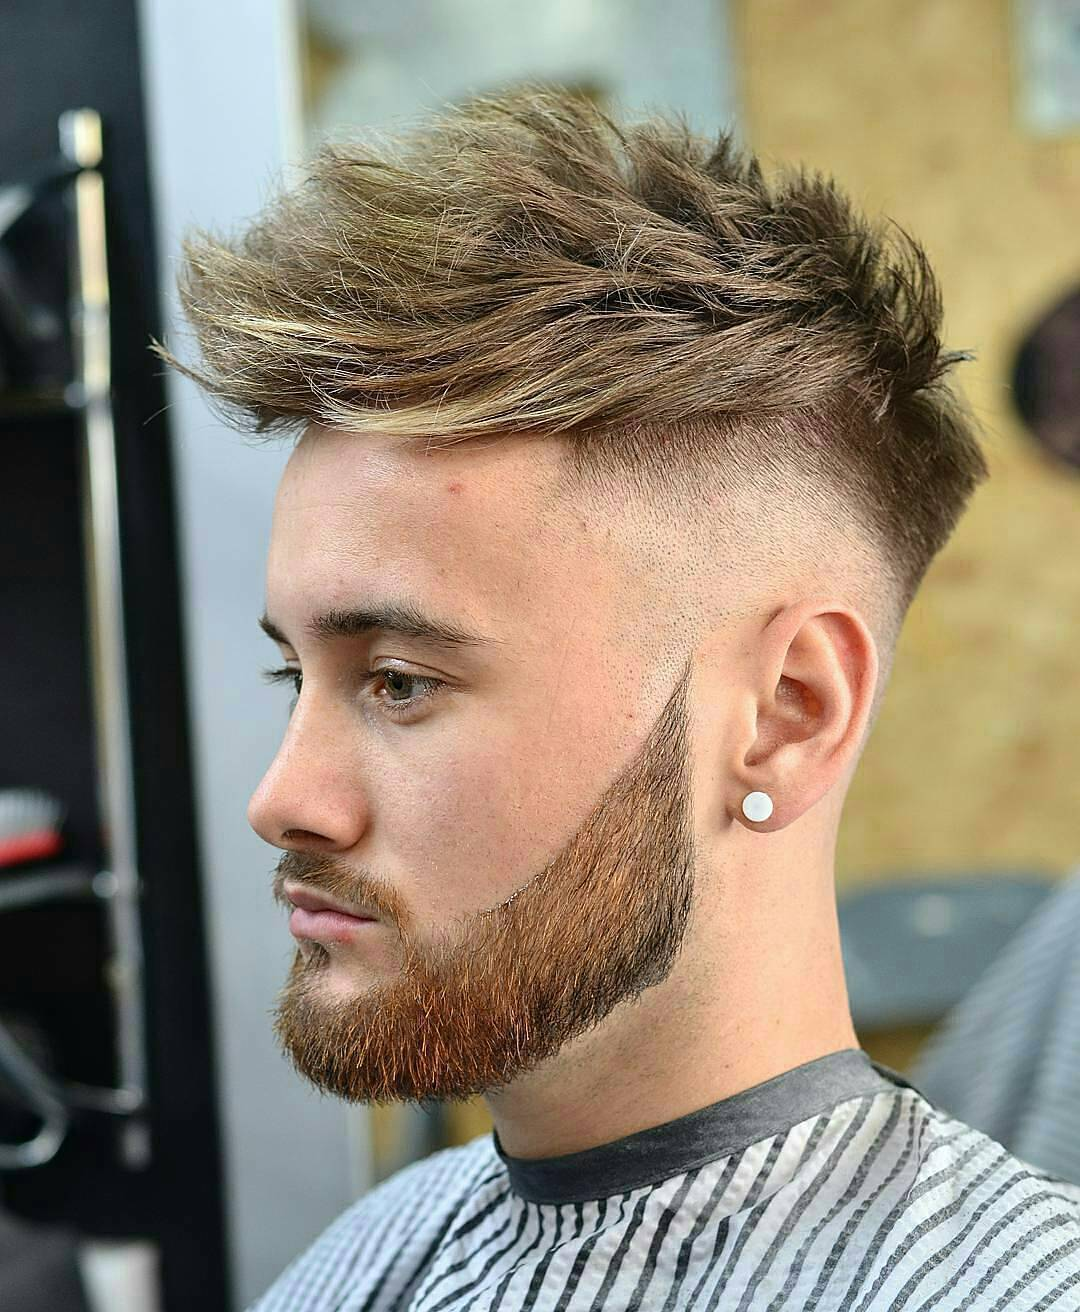 Hairstyle Haircuts With Fades Bald Fade Short Fade Haircut